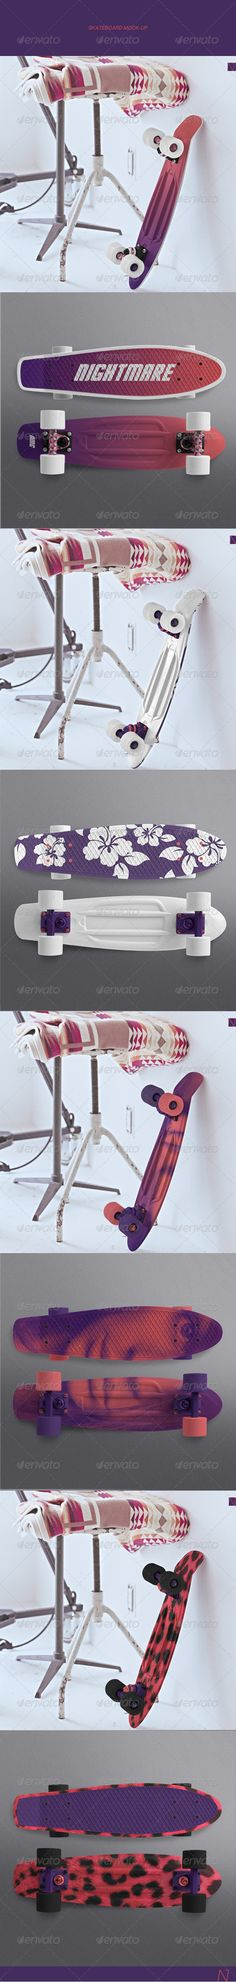 Skateboard Mock-up ...  accessories, board, branding, company, cruiser, customize, dunhill, equipment, extreme, goods, hipster, hipsters, identity, indie, jump, long, longboard, mock up, mock-up, mockup, nightmarecatcher, skate, skateboard, skater, slide, sport, sporting, template, wedge